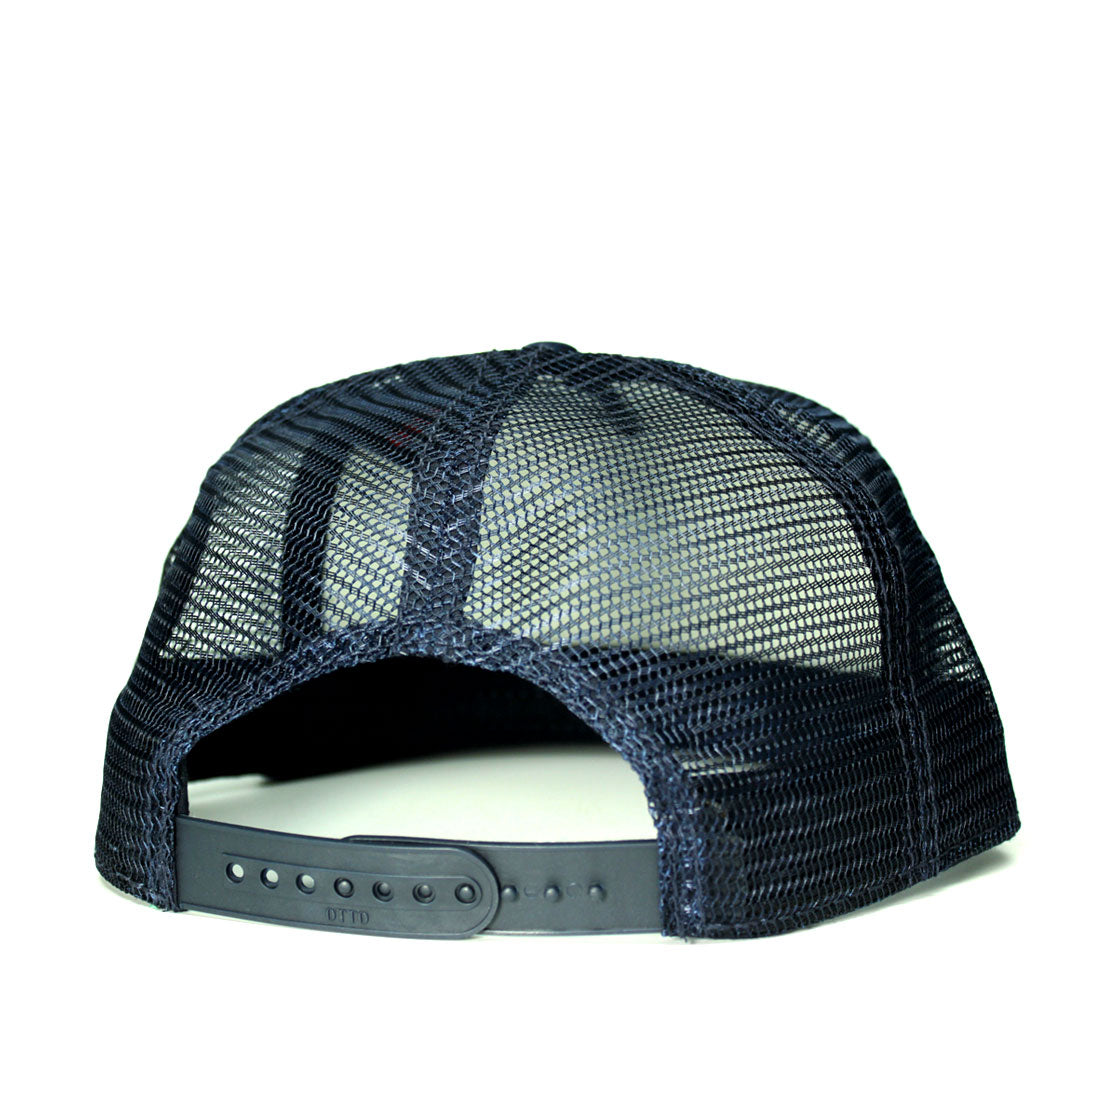 RIZNWILD | back view of navy trucker hat with snaps